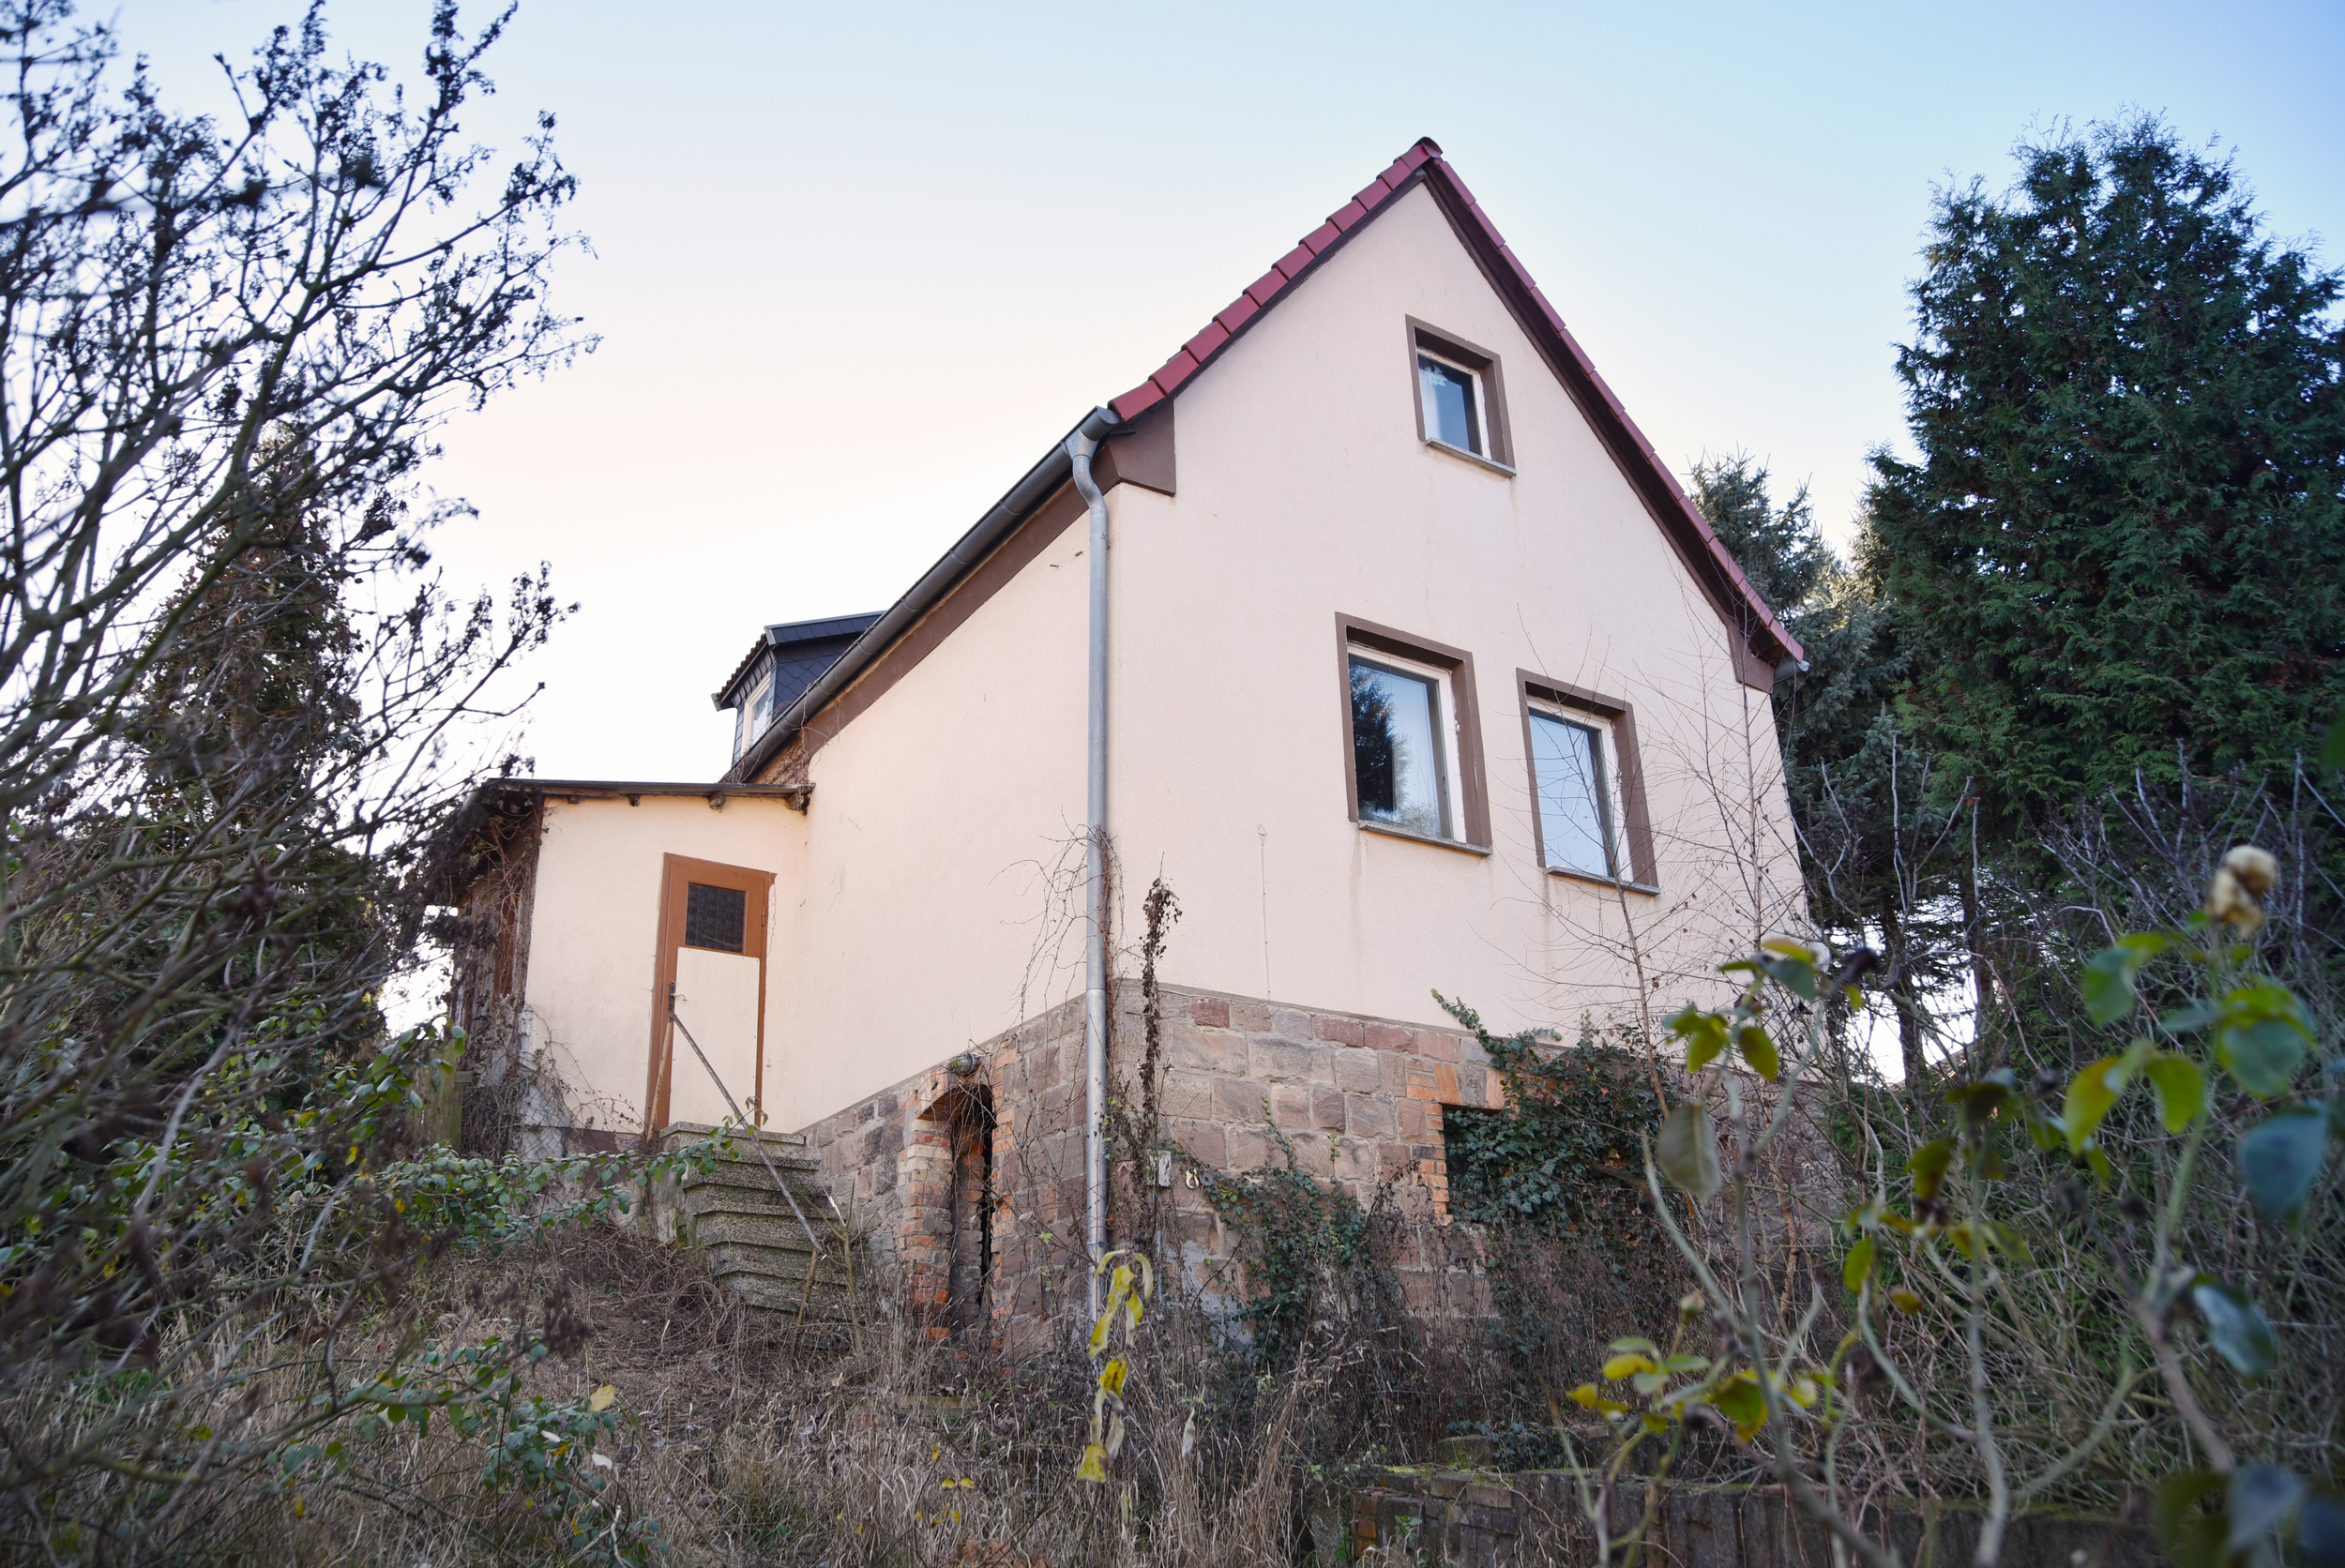 Lot 5 - LARGE FREEHOLD HOUSE AND LAND IN SAXONY-ANHALT, GERMANY